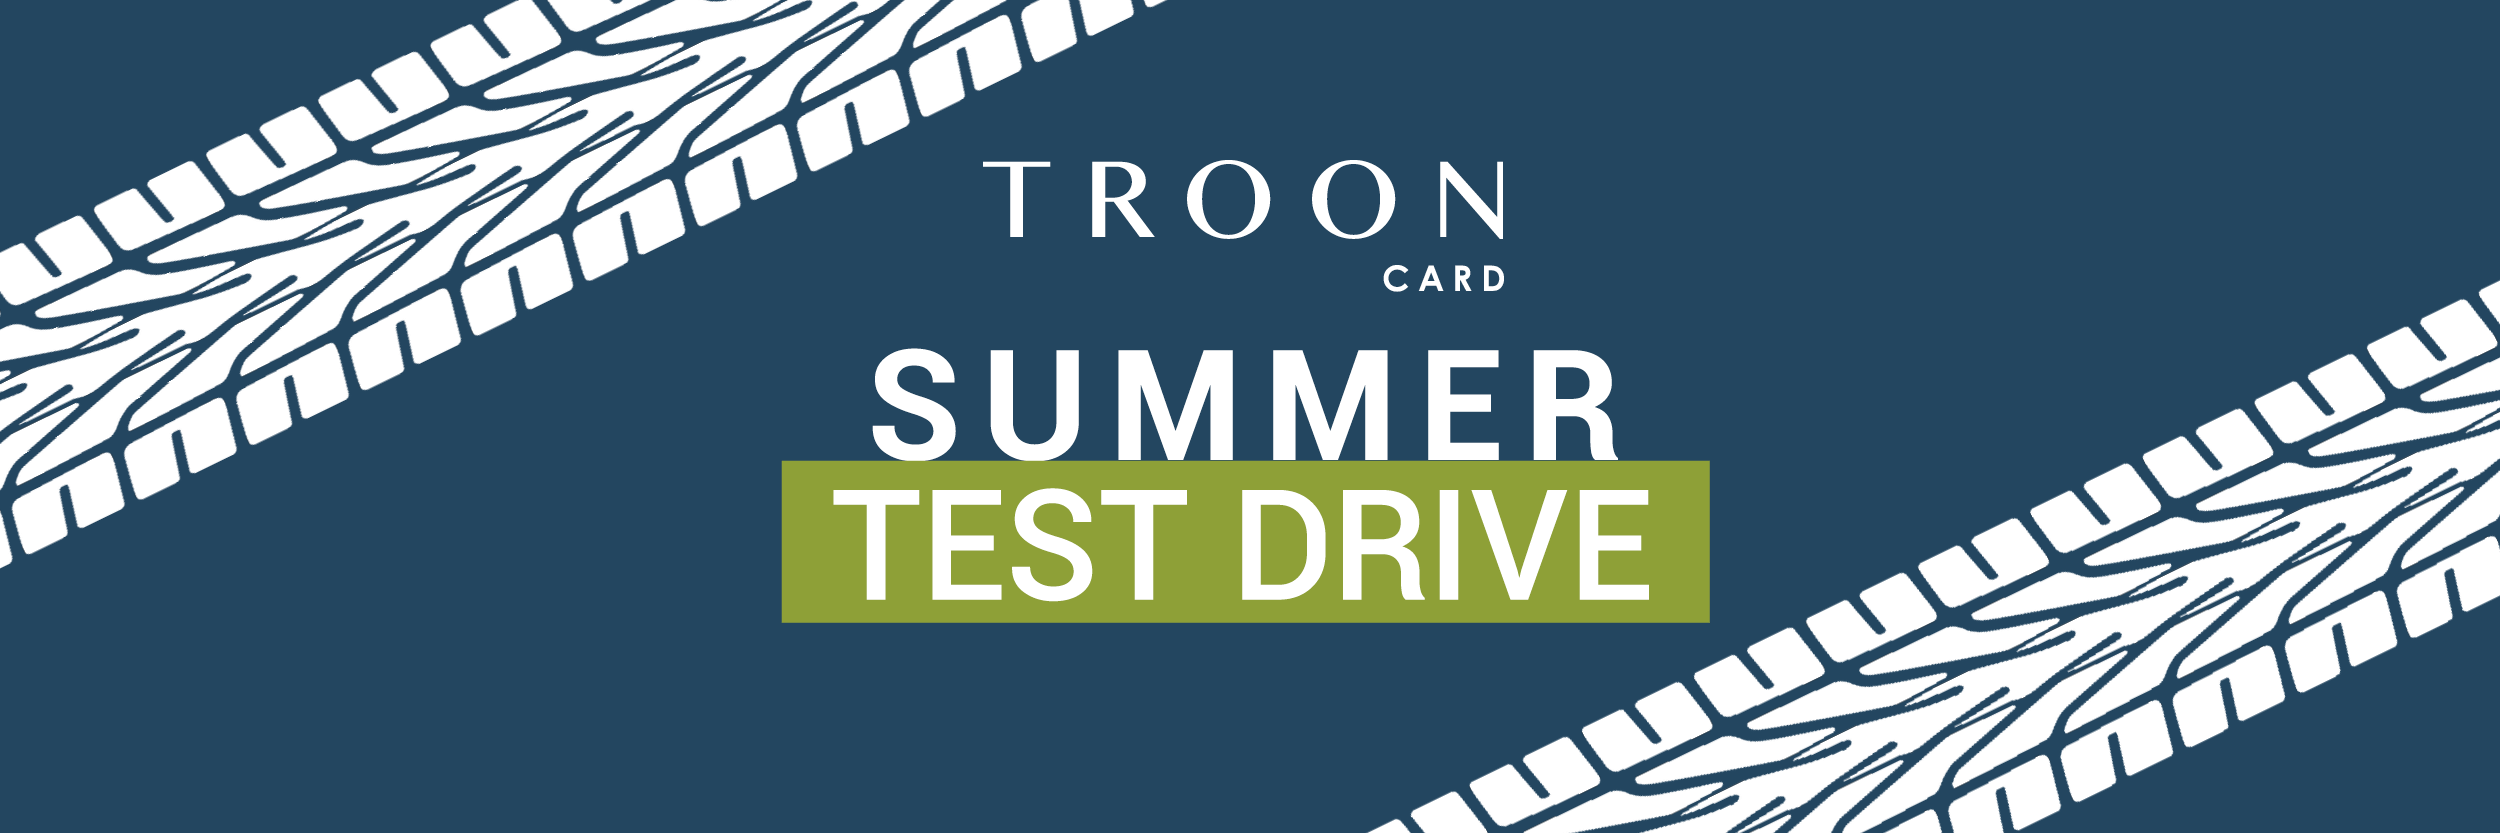 TROON INTRODUCES NEW TROON CARD SUMMER TEST DRIVE IN ARIZONA AND CALIFORNIA